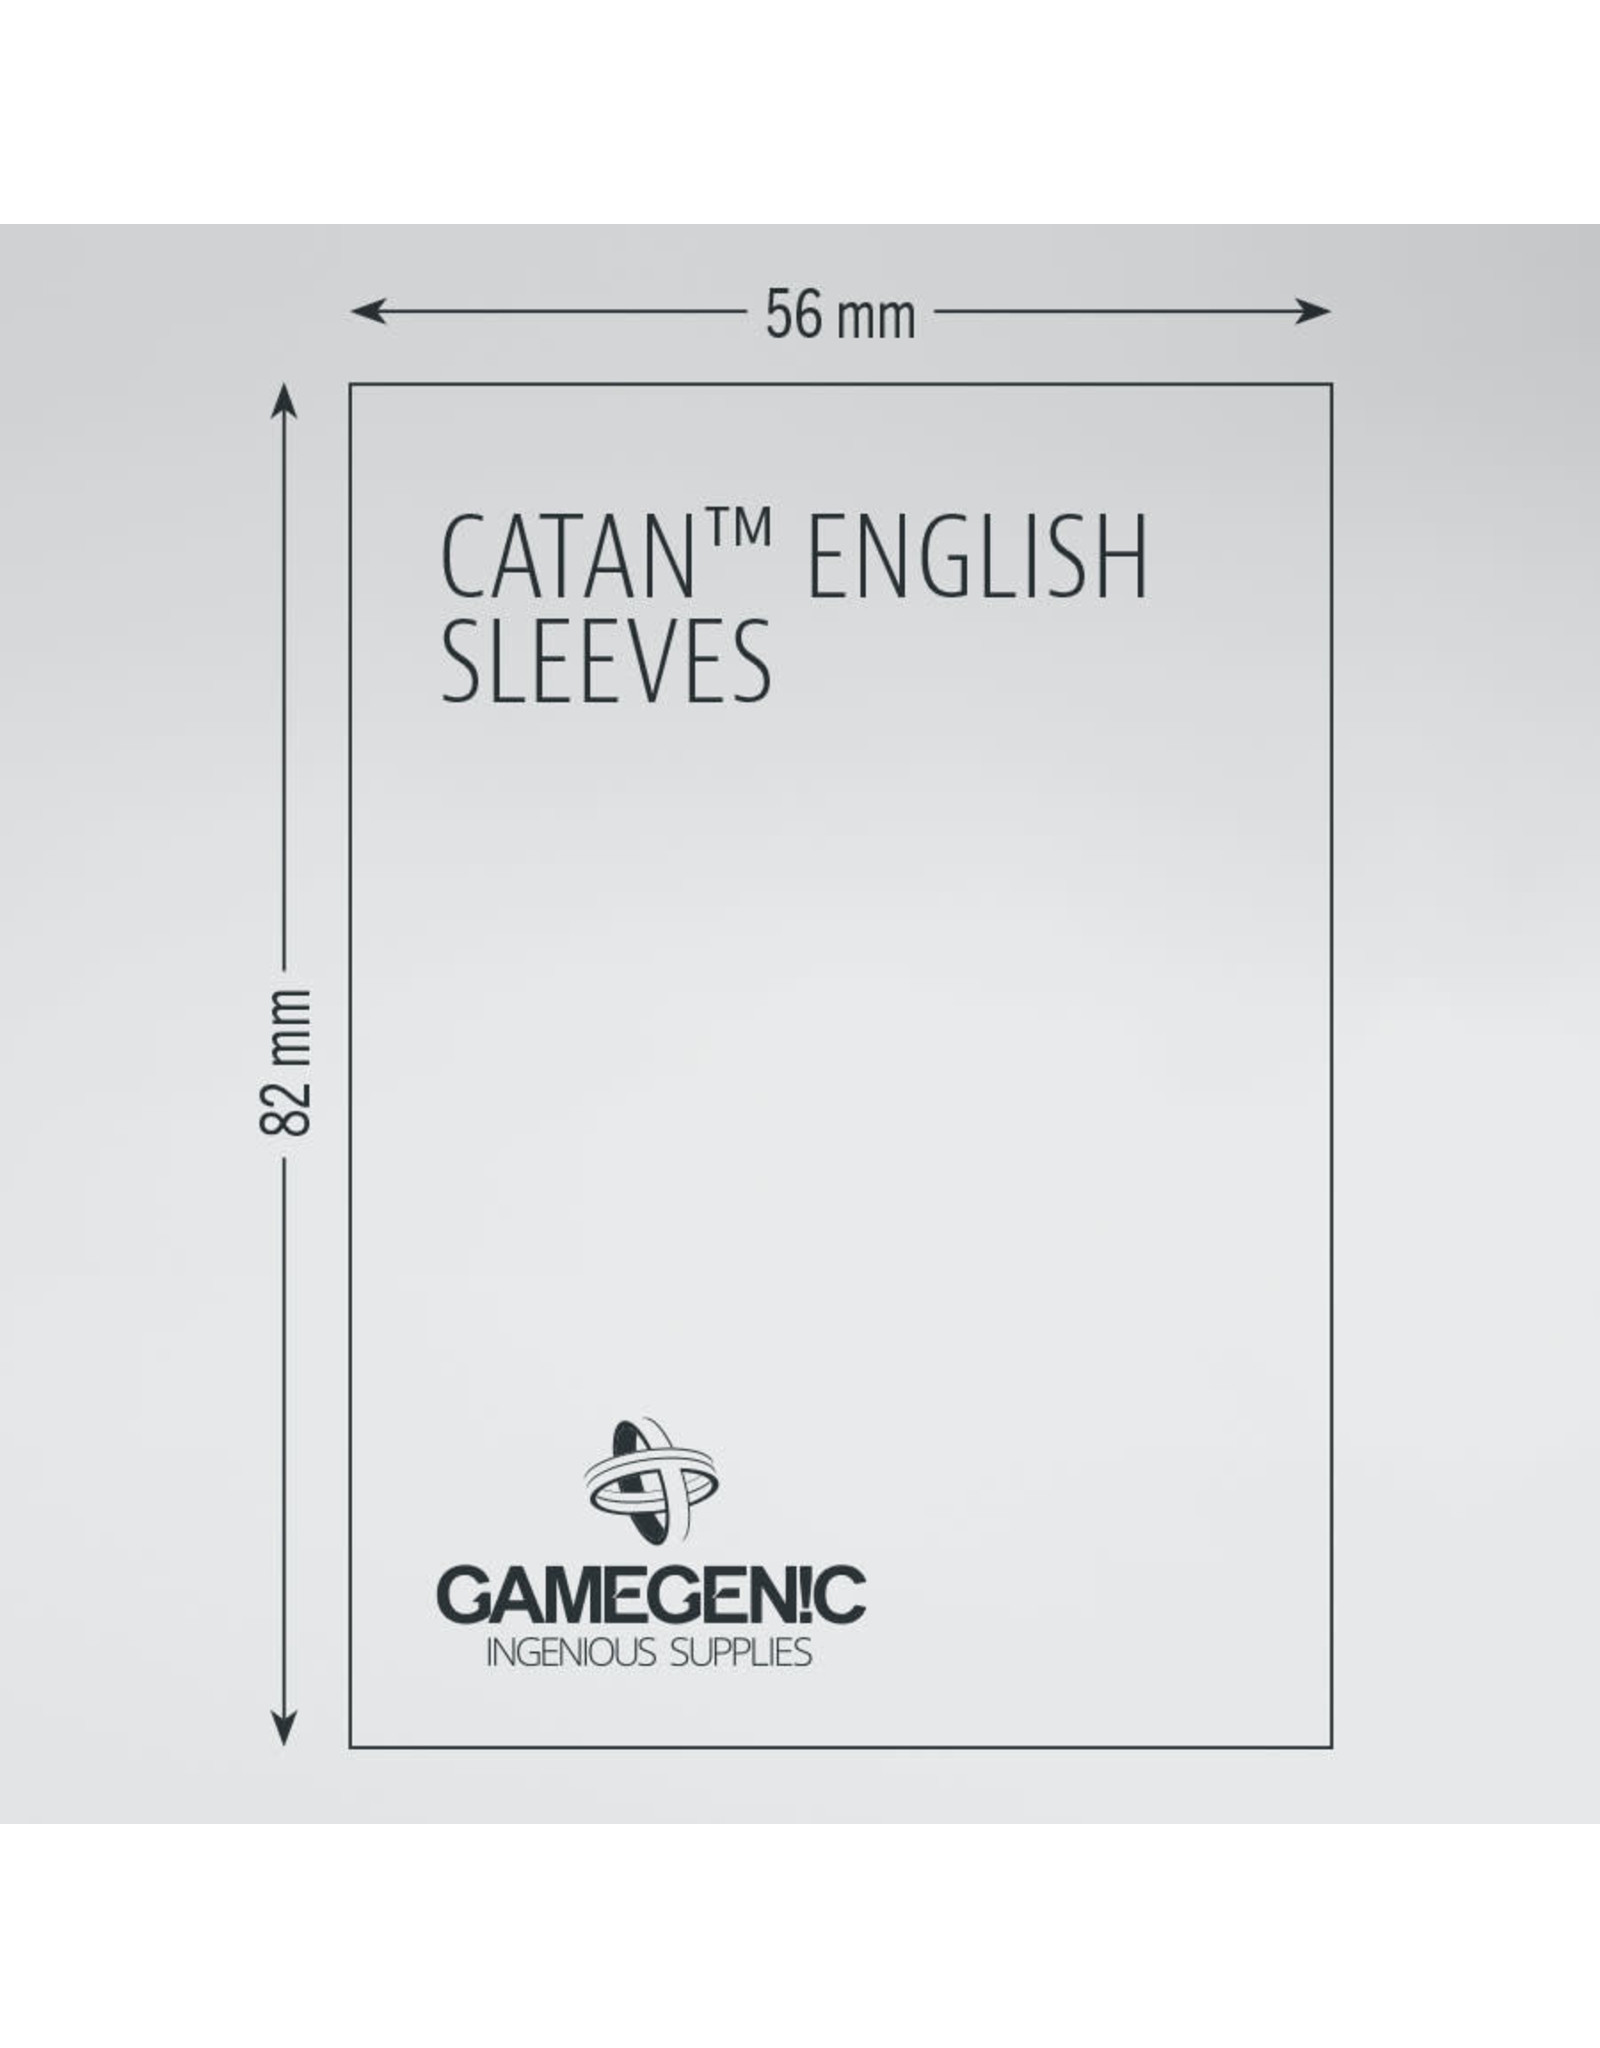 Gamegenic Catan: PRIME Board Game Sleeves